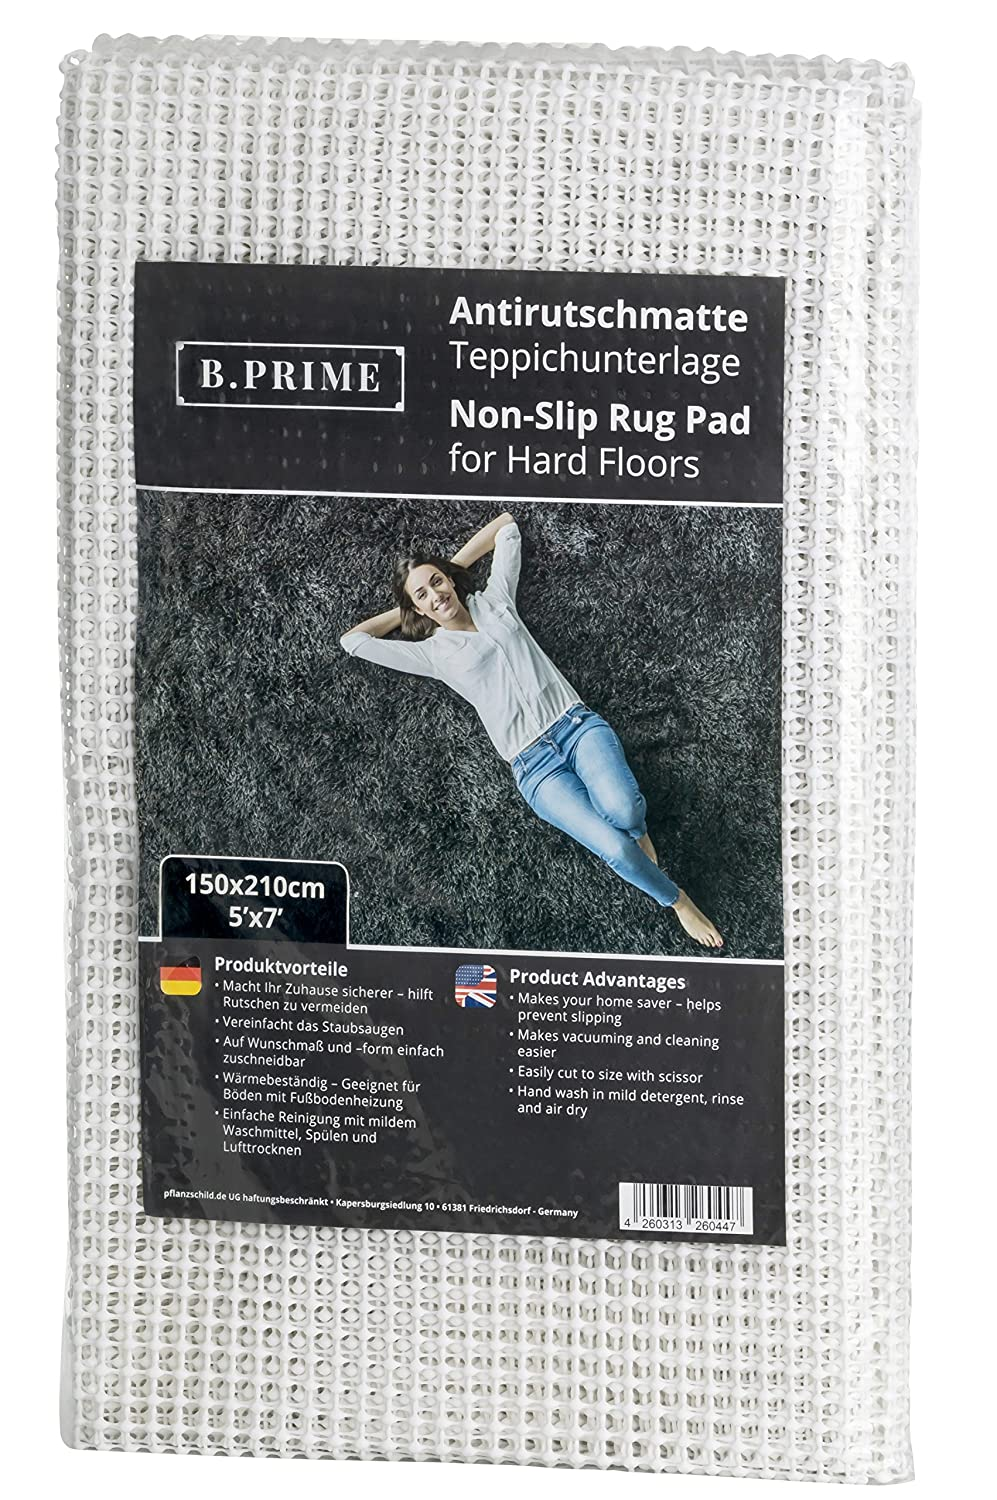 B.PRIME 5x7-Feet Non-Slip Rug Underlay Pad for Hard Floors. Different Size Options Available